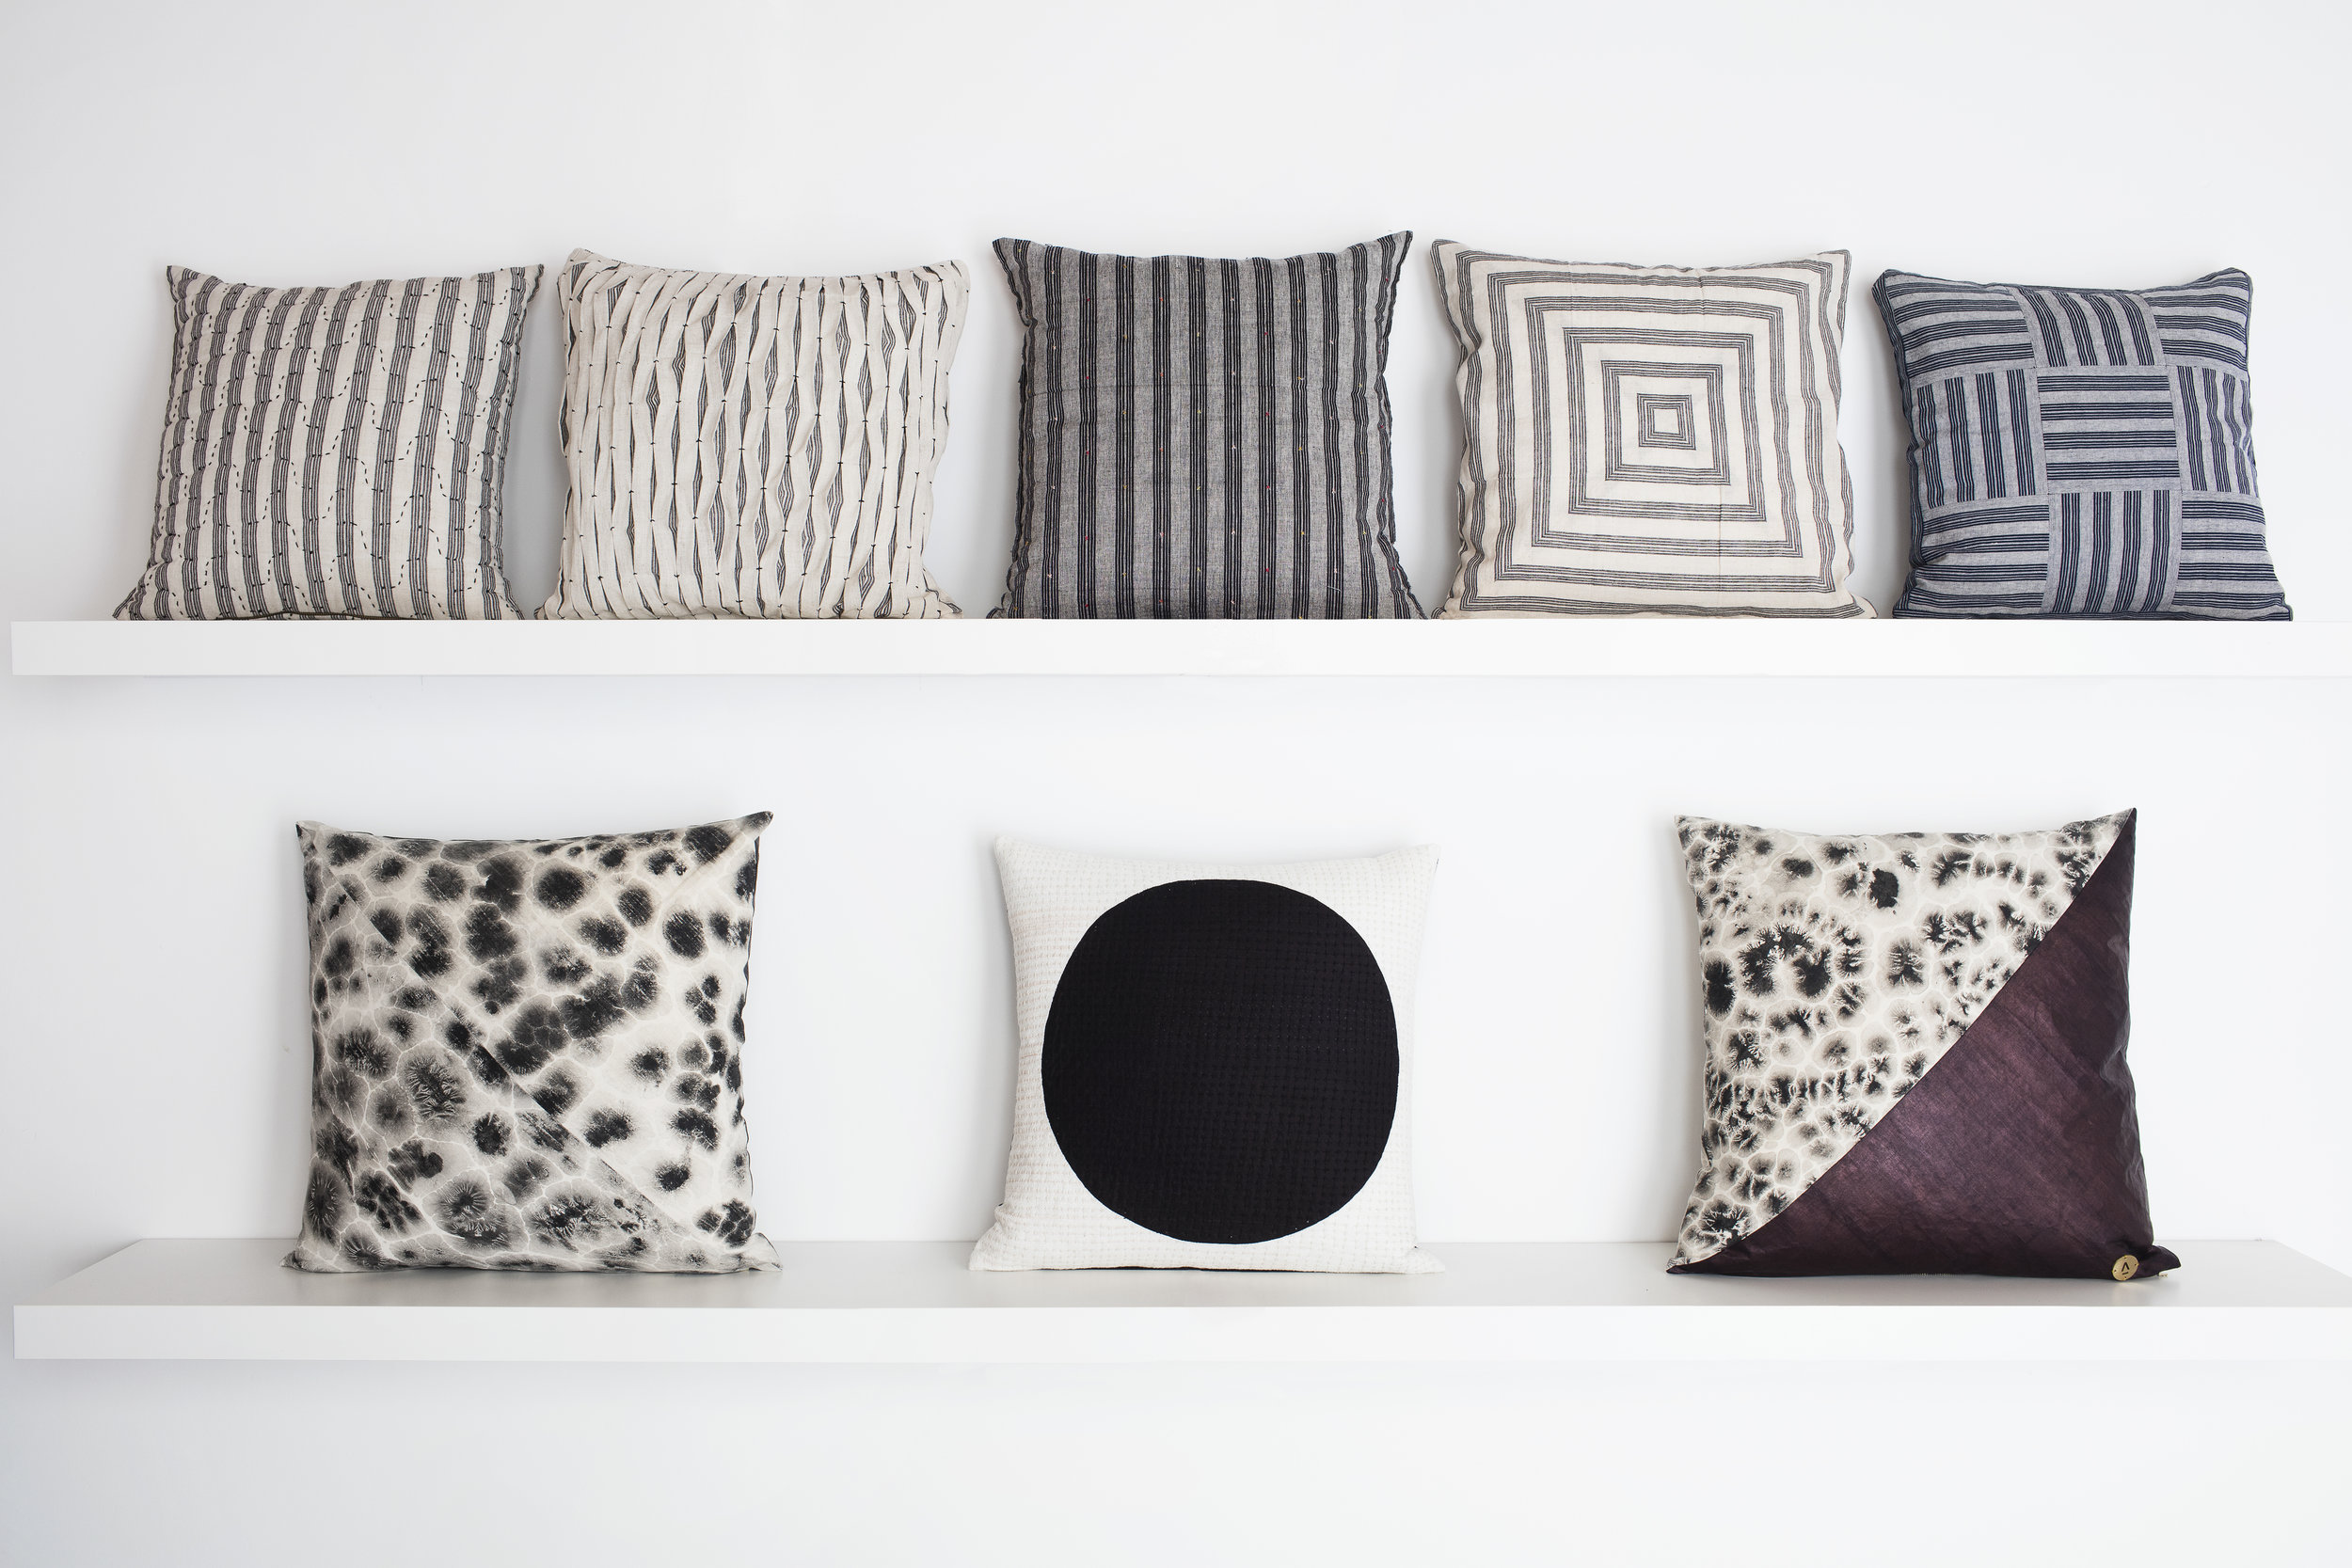 Dali pillow designs and  TERRAIN  products together.